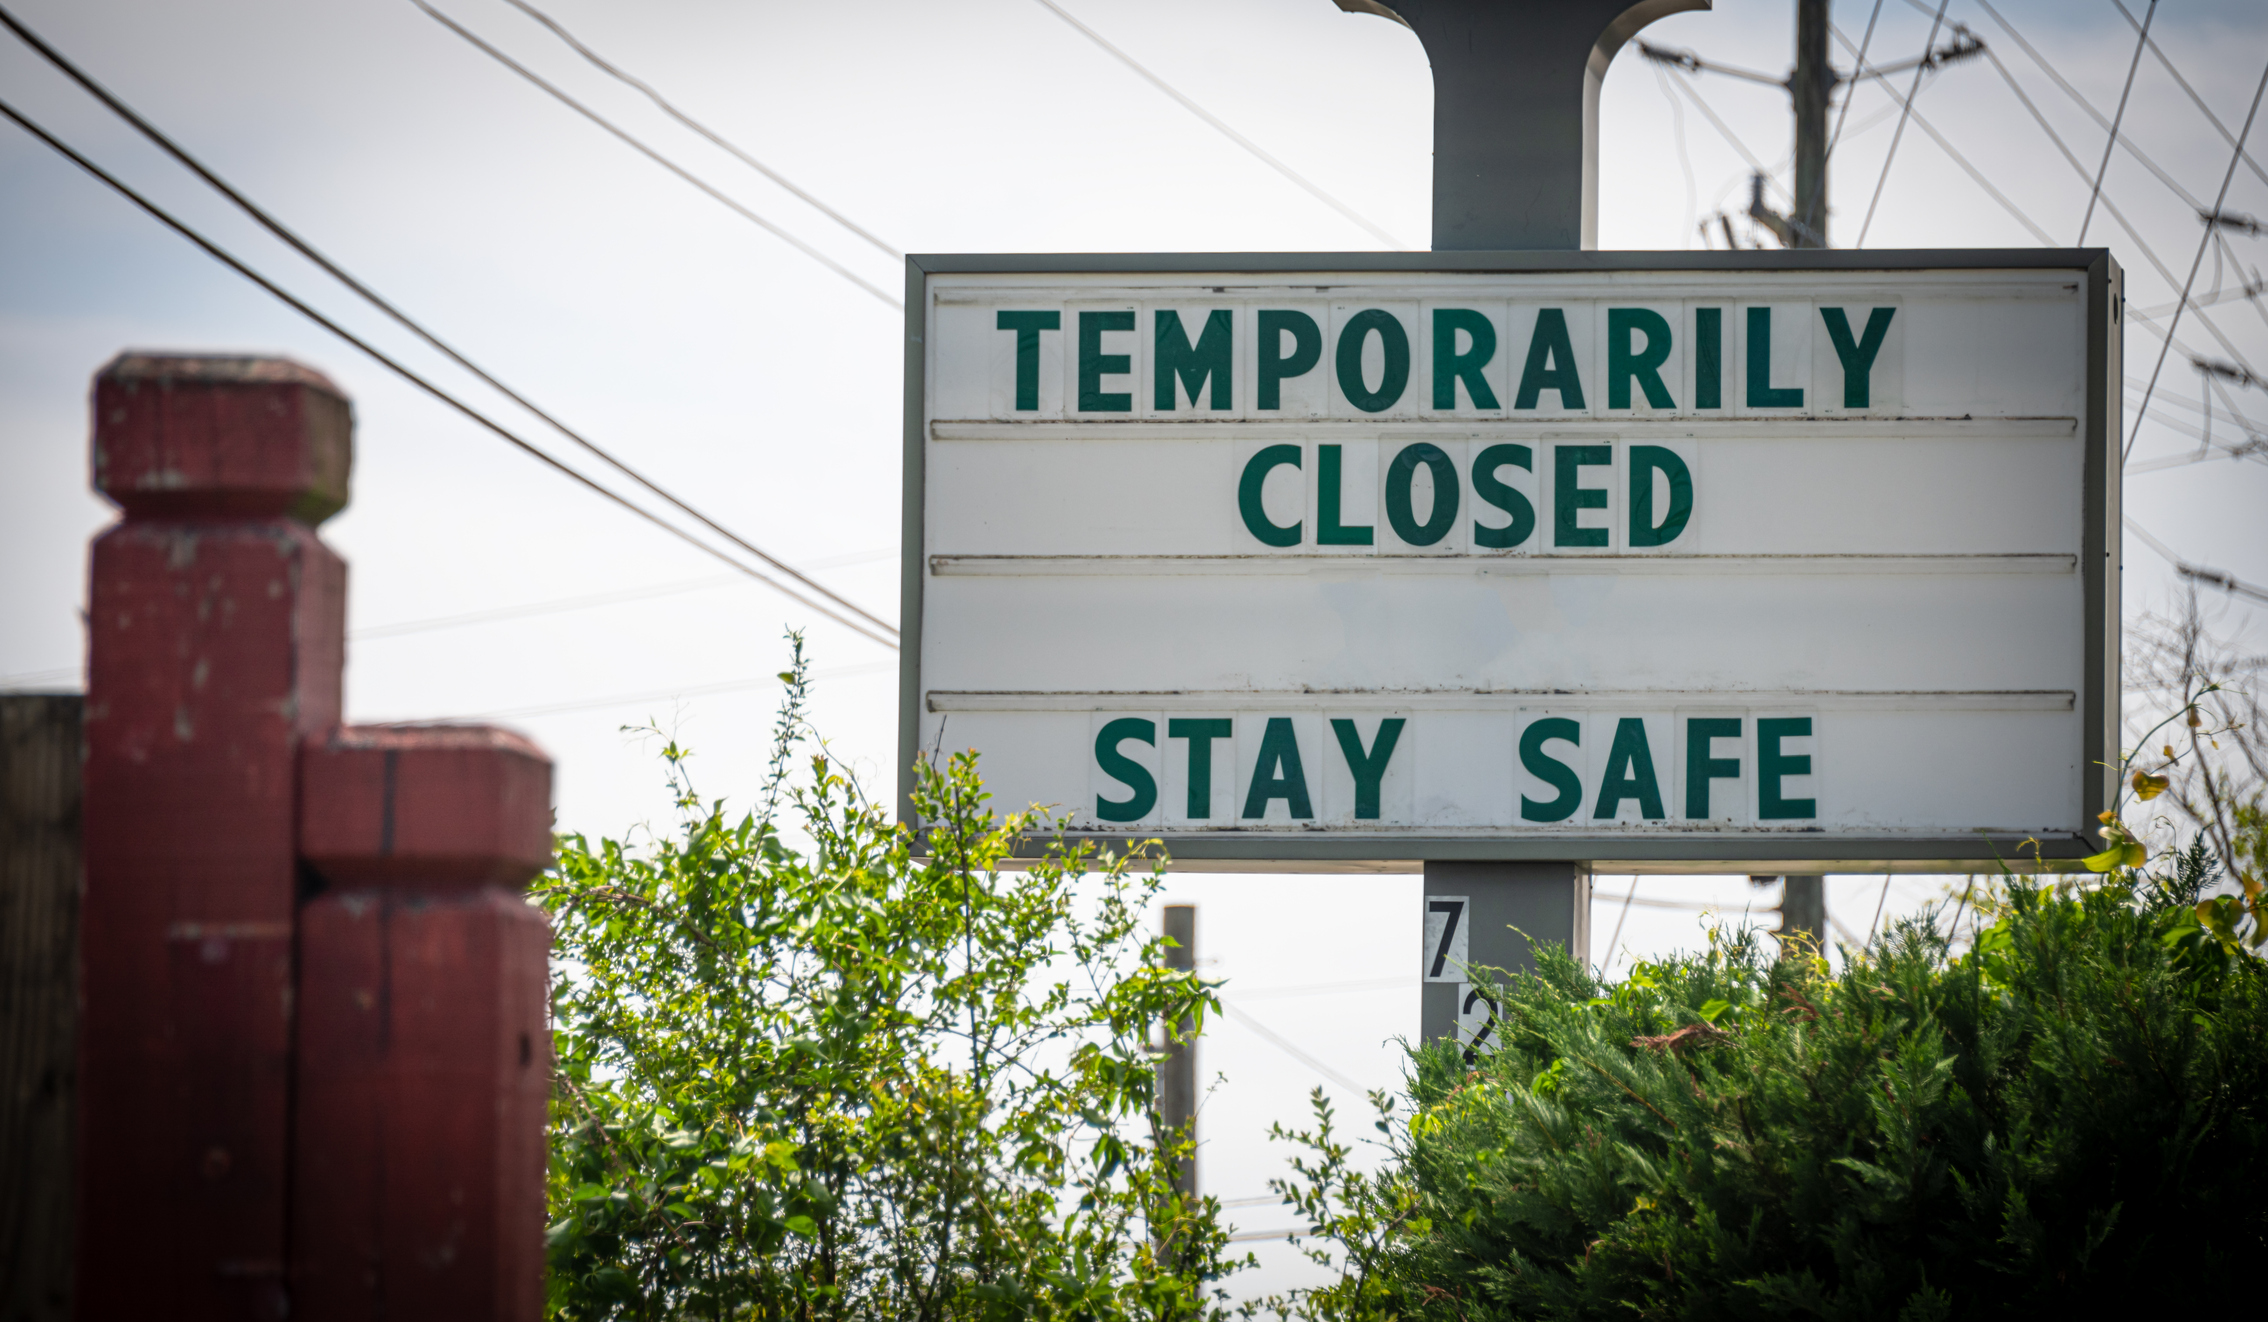 """Temporarily Closed, Stay Safe"" Sign"